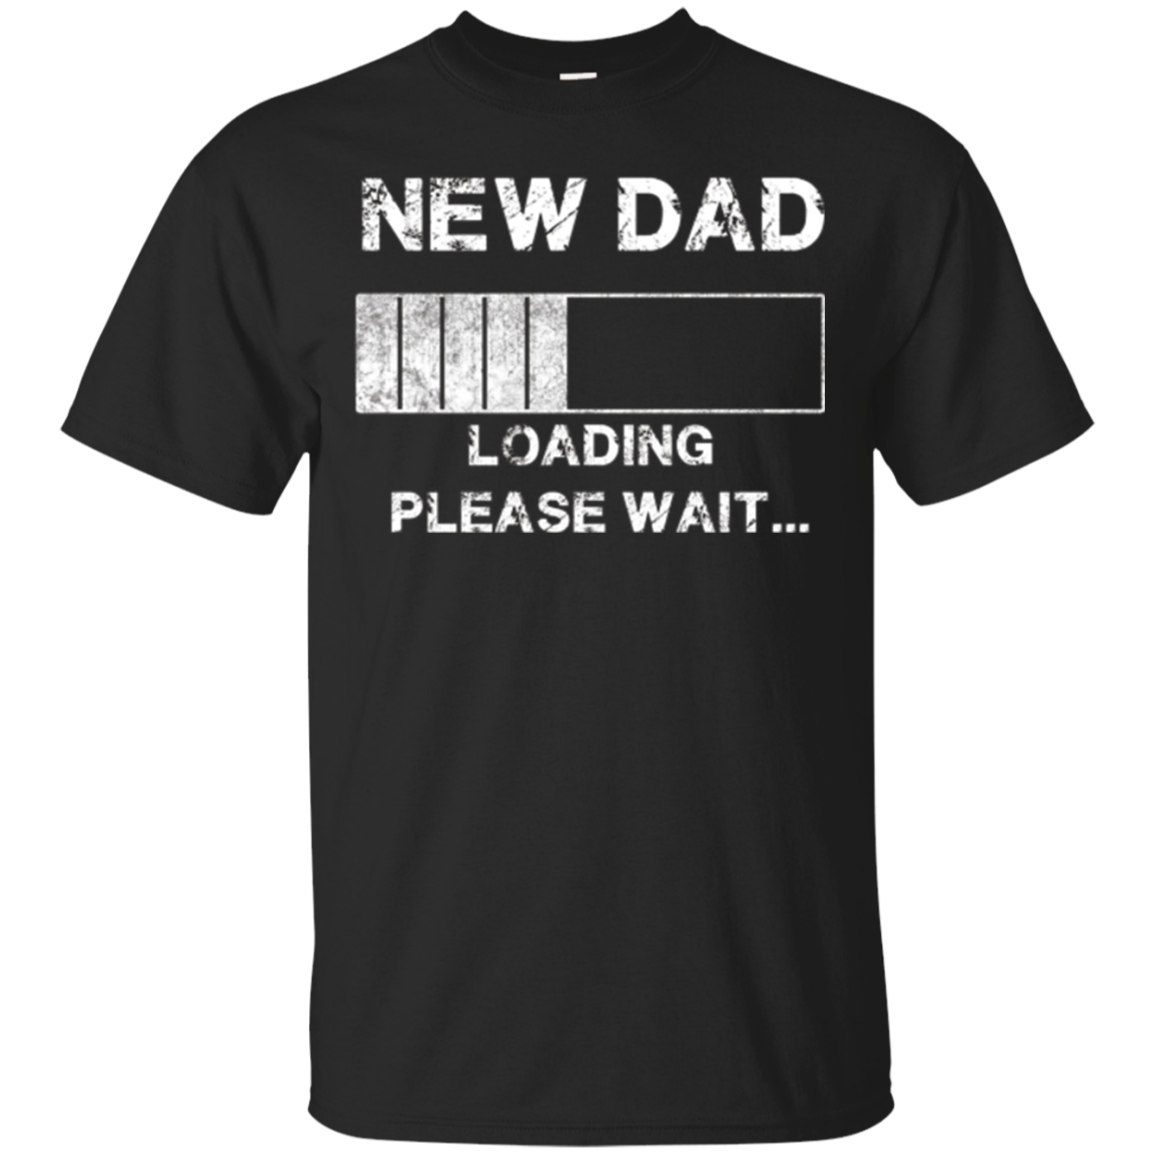 Funny New Dad T-shirt - Loading please wait